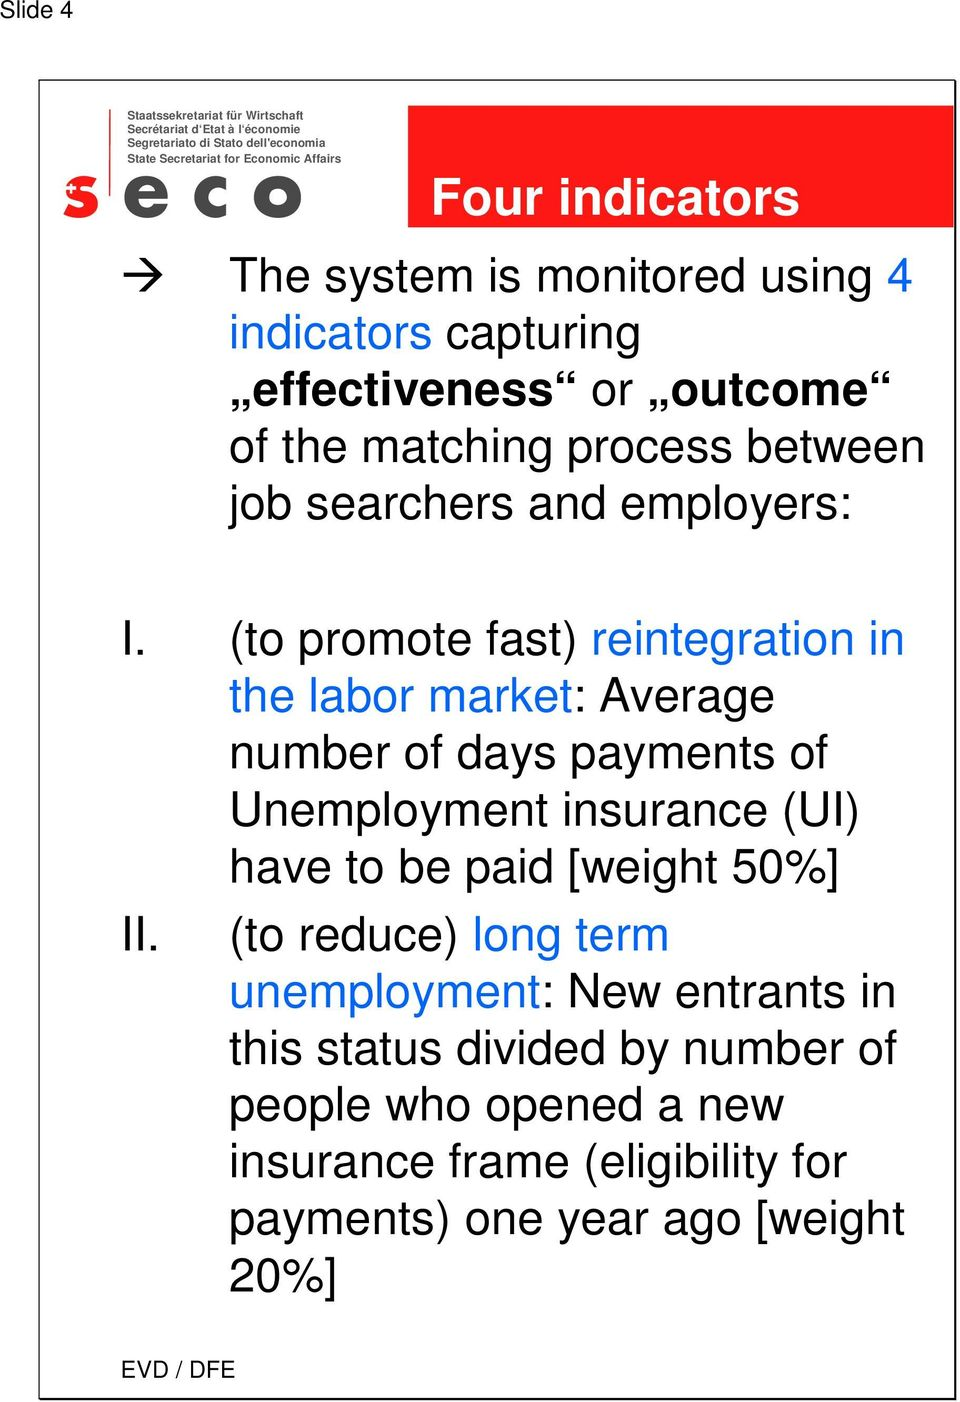 (to promote fast) reintegration in the labor market: Average number of days payments of Unemployment insurance (UI) have